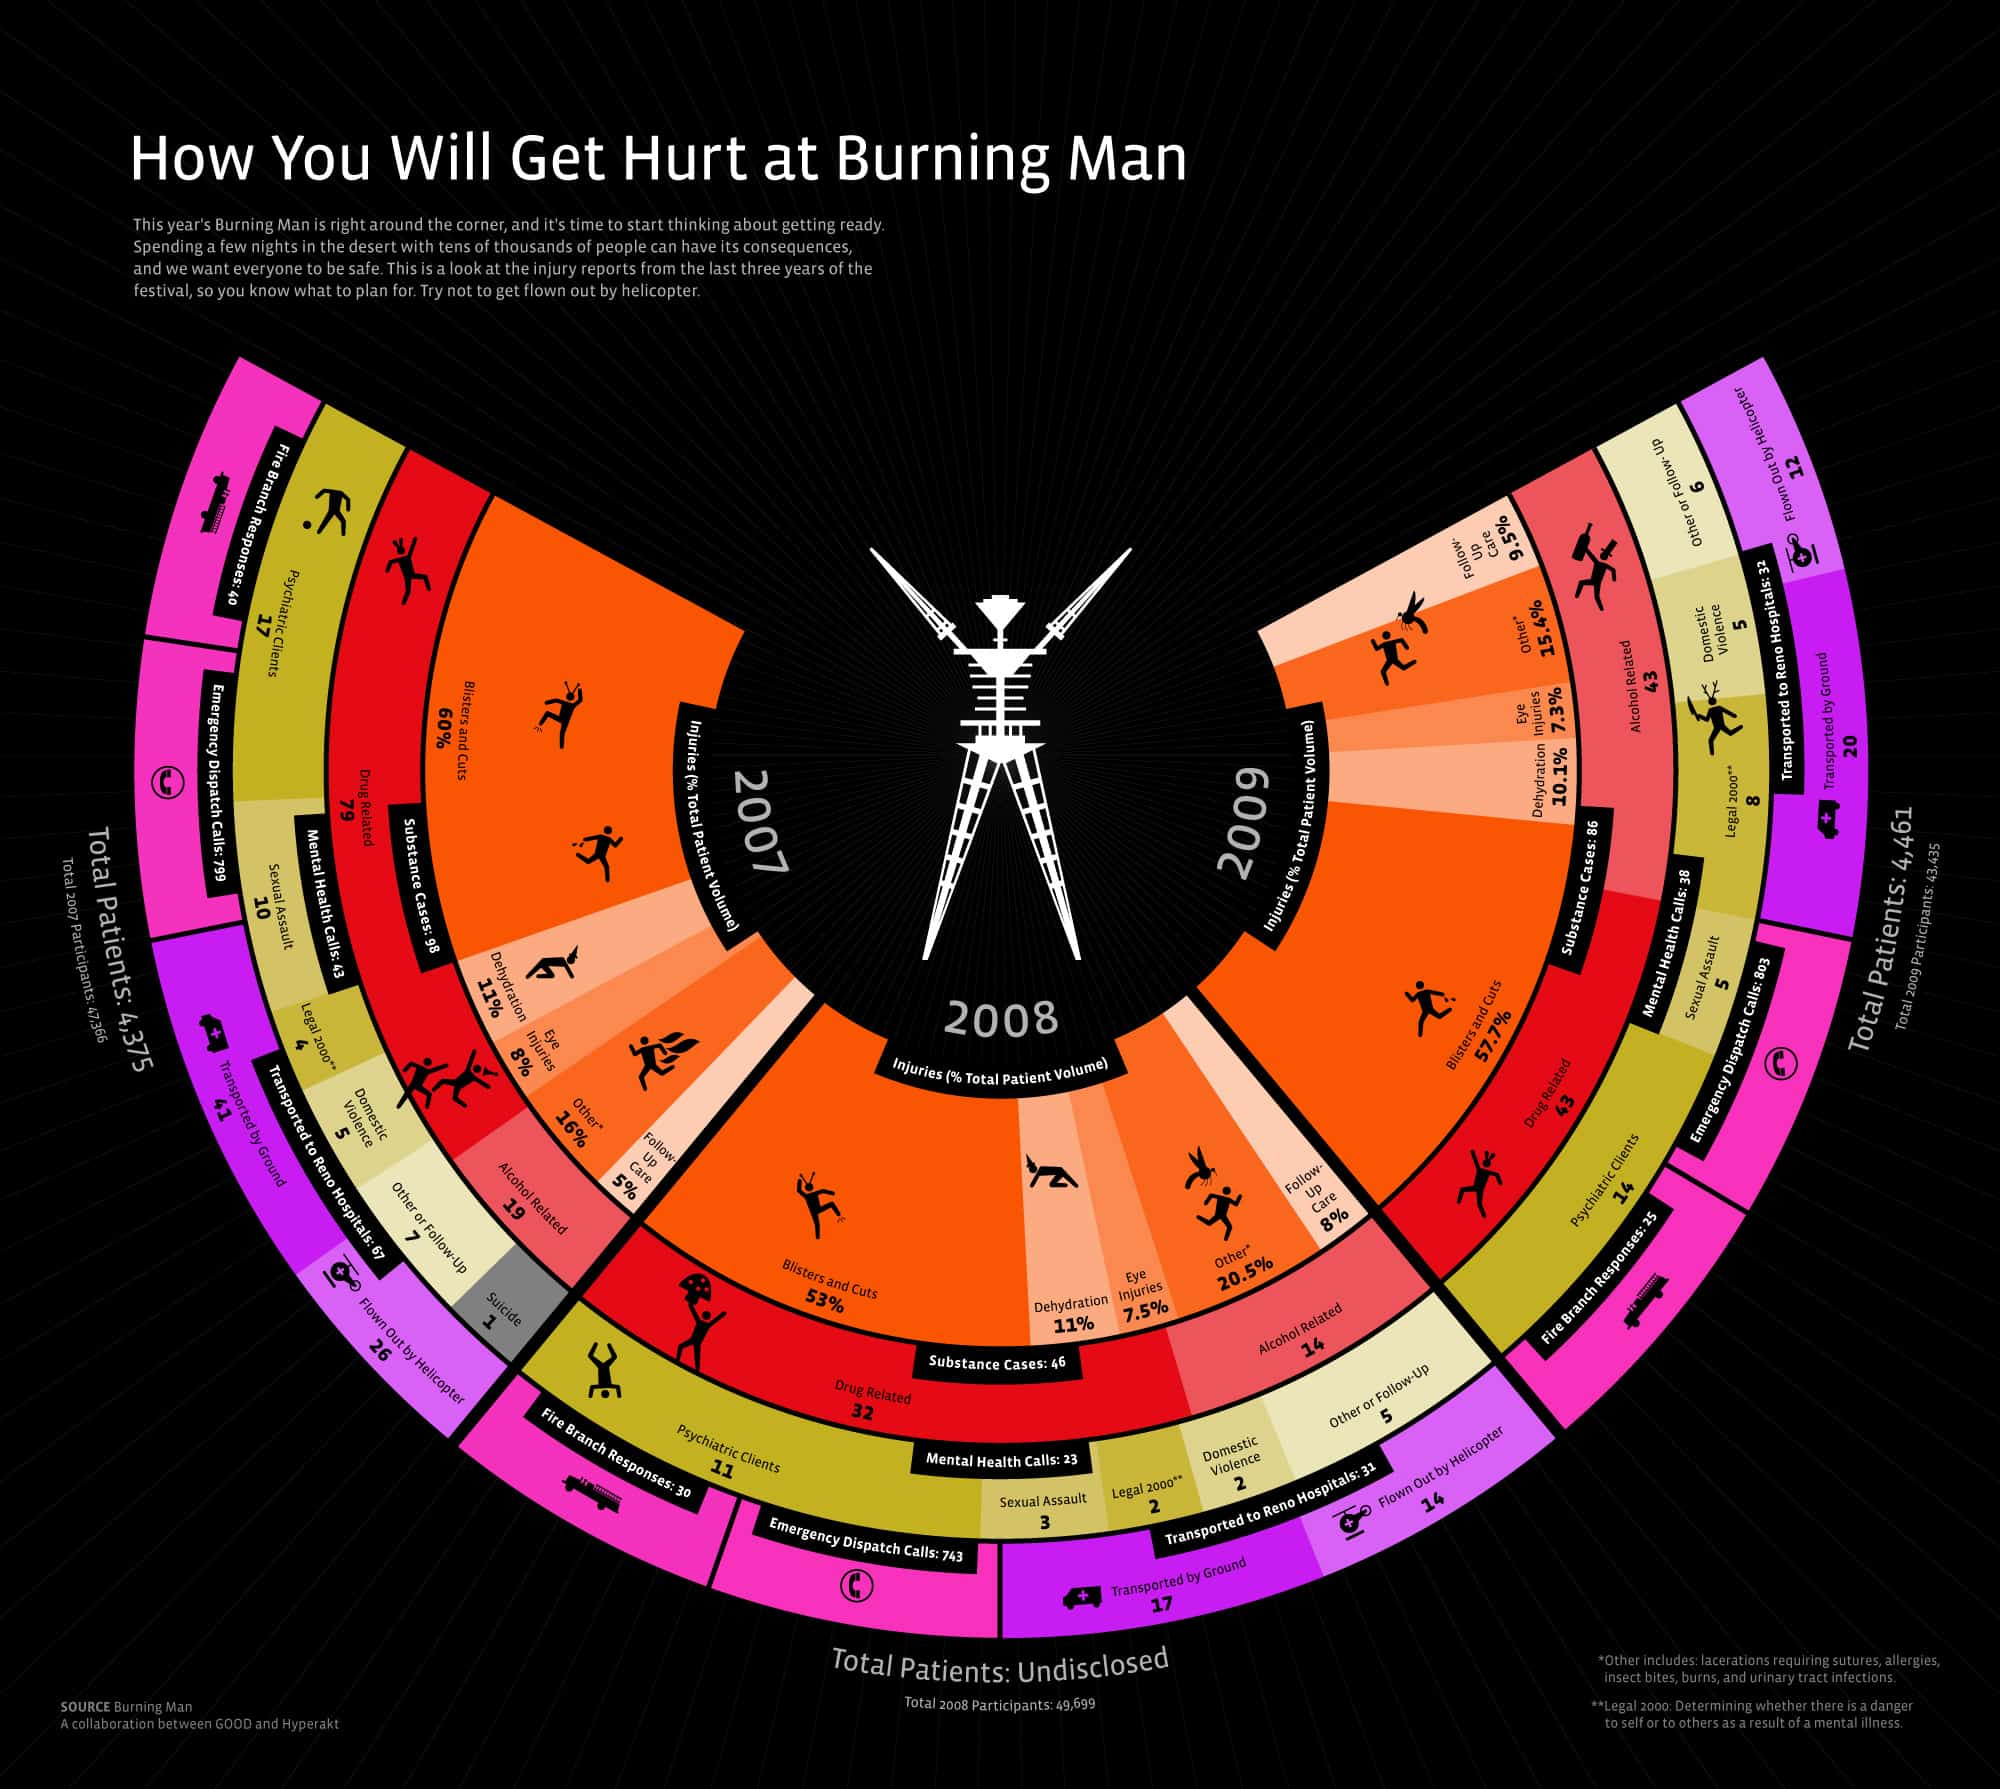 hurt at burning man